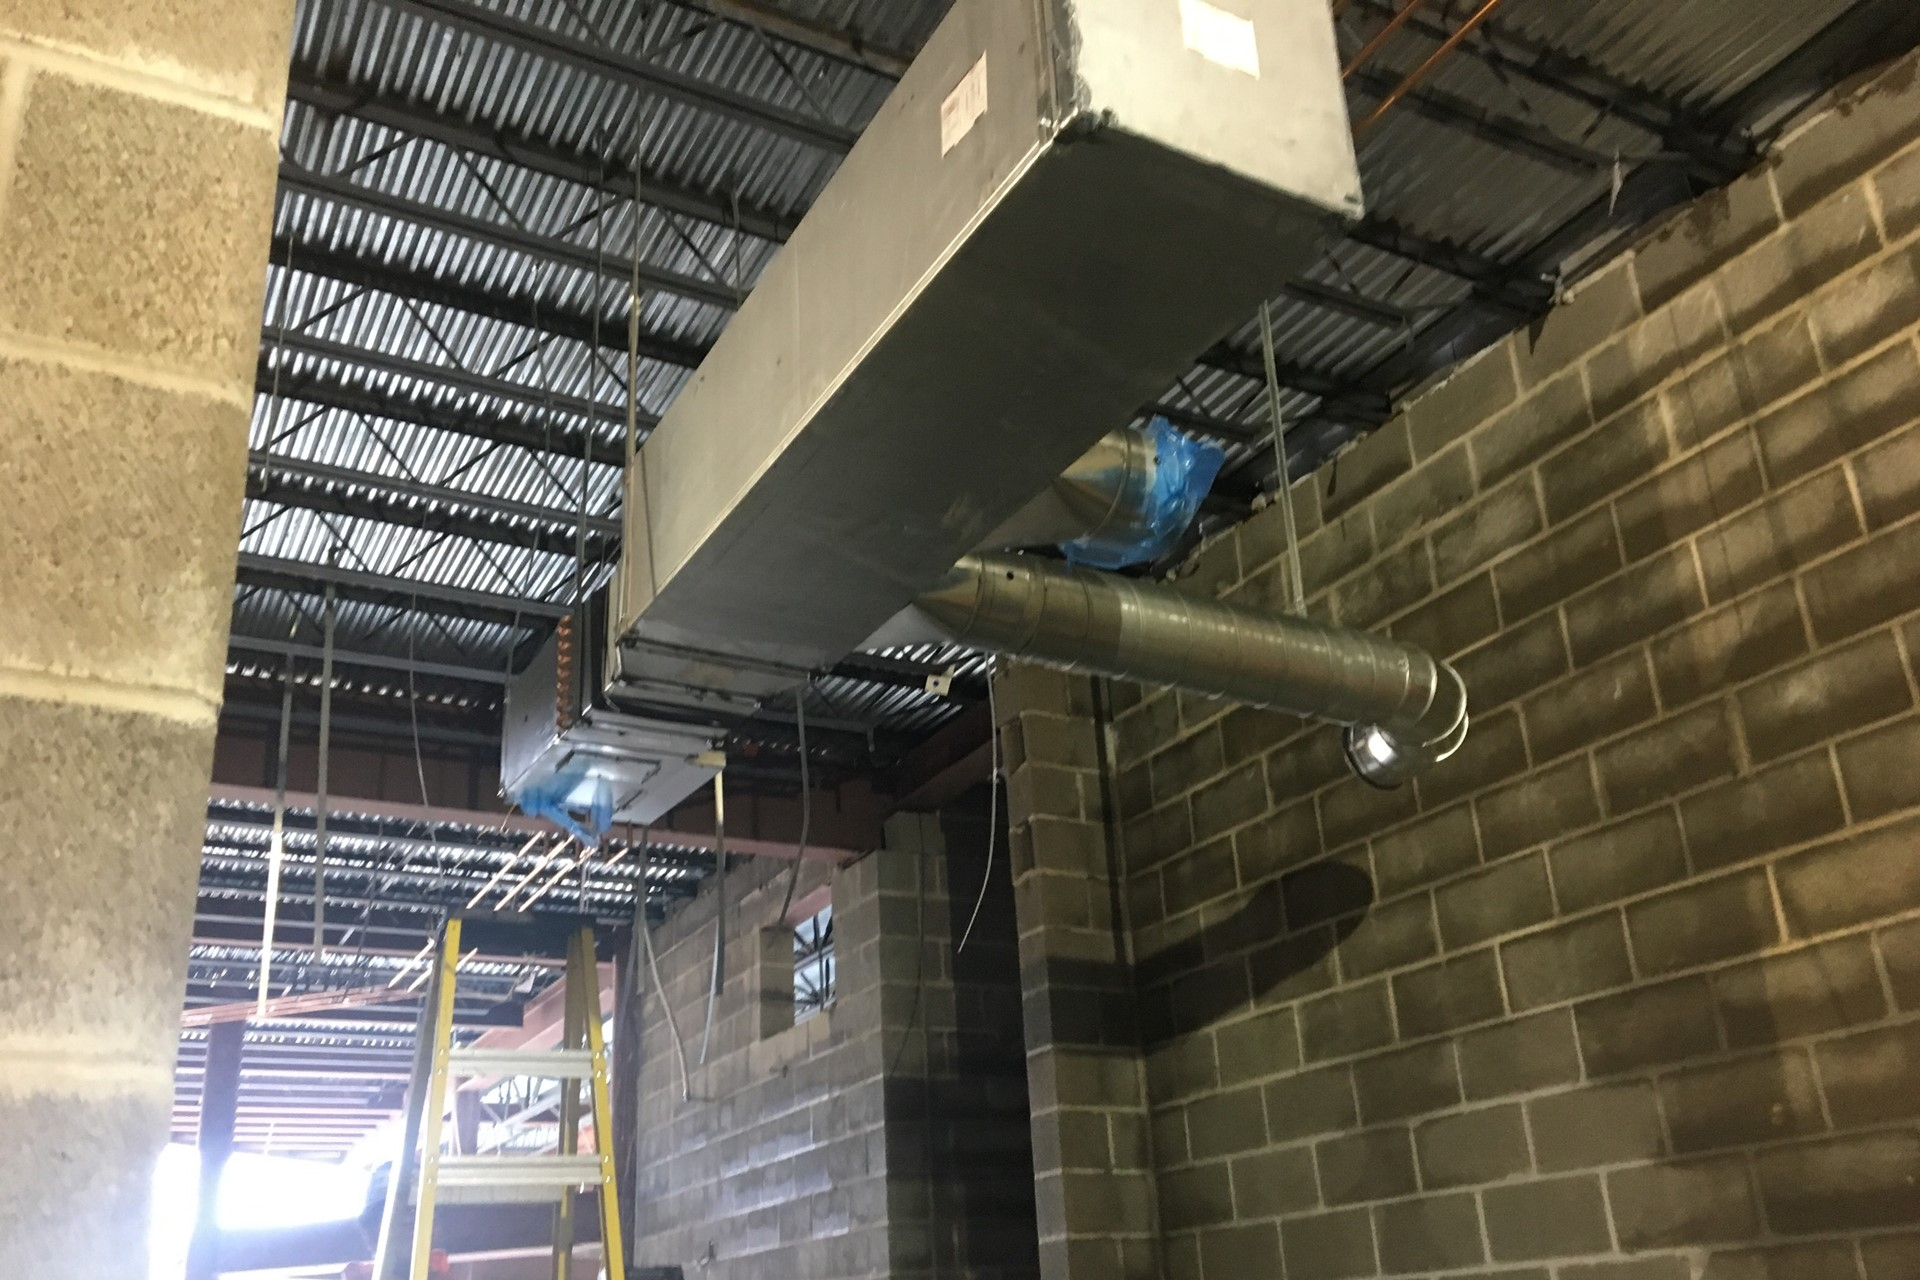 New school construction site: HVAC system installation